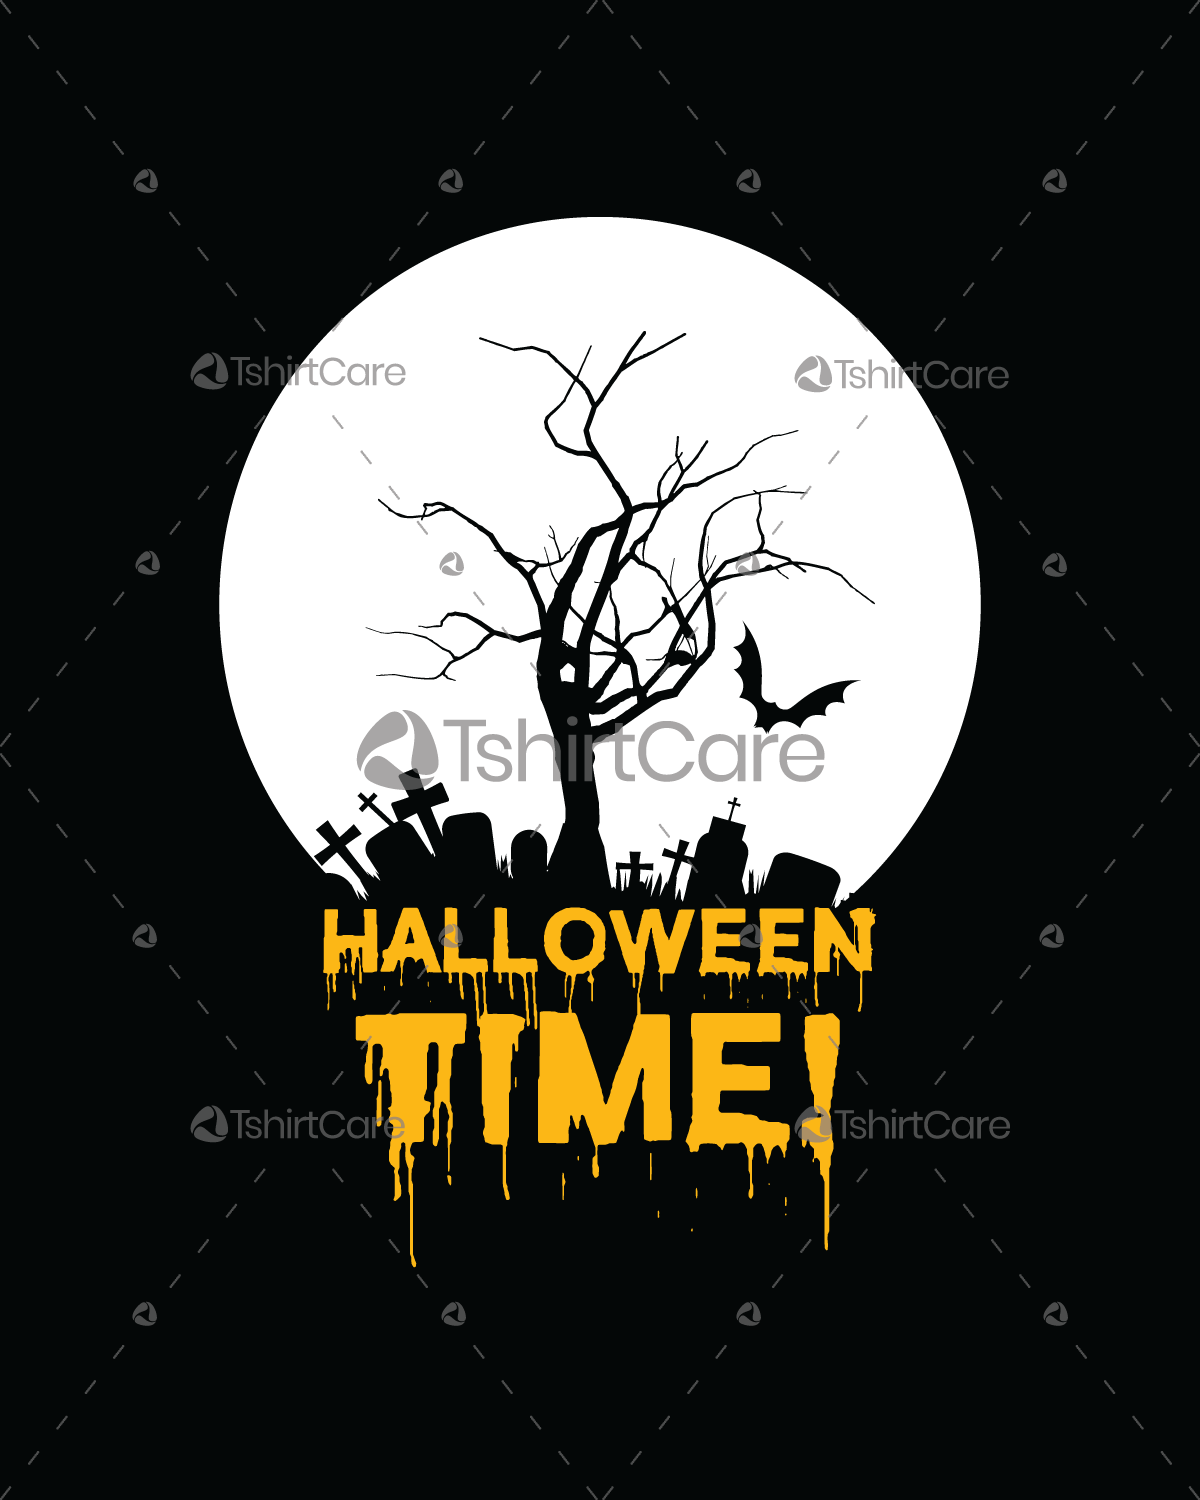 halloween time tree t shirt design event t shirts tops for men s rh tshirtcare com halloween t shirt design halloween tee shirt designs